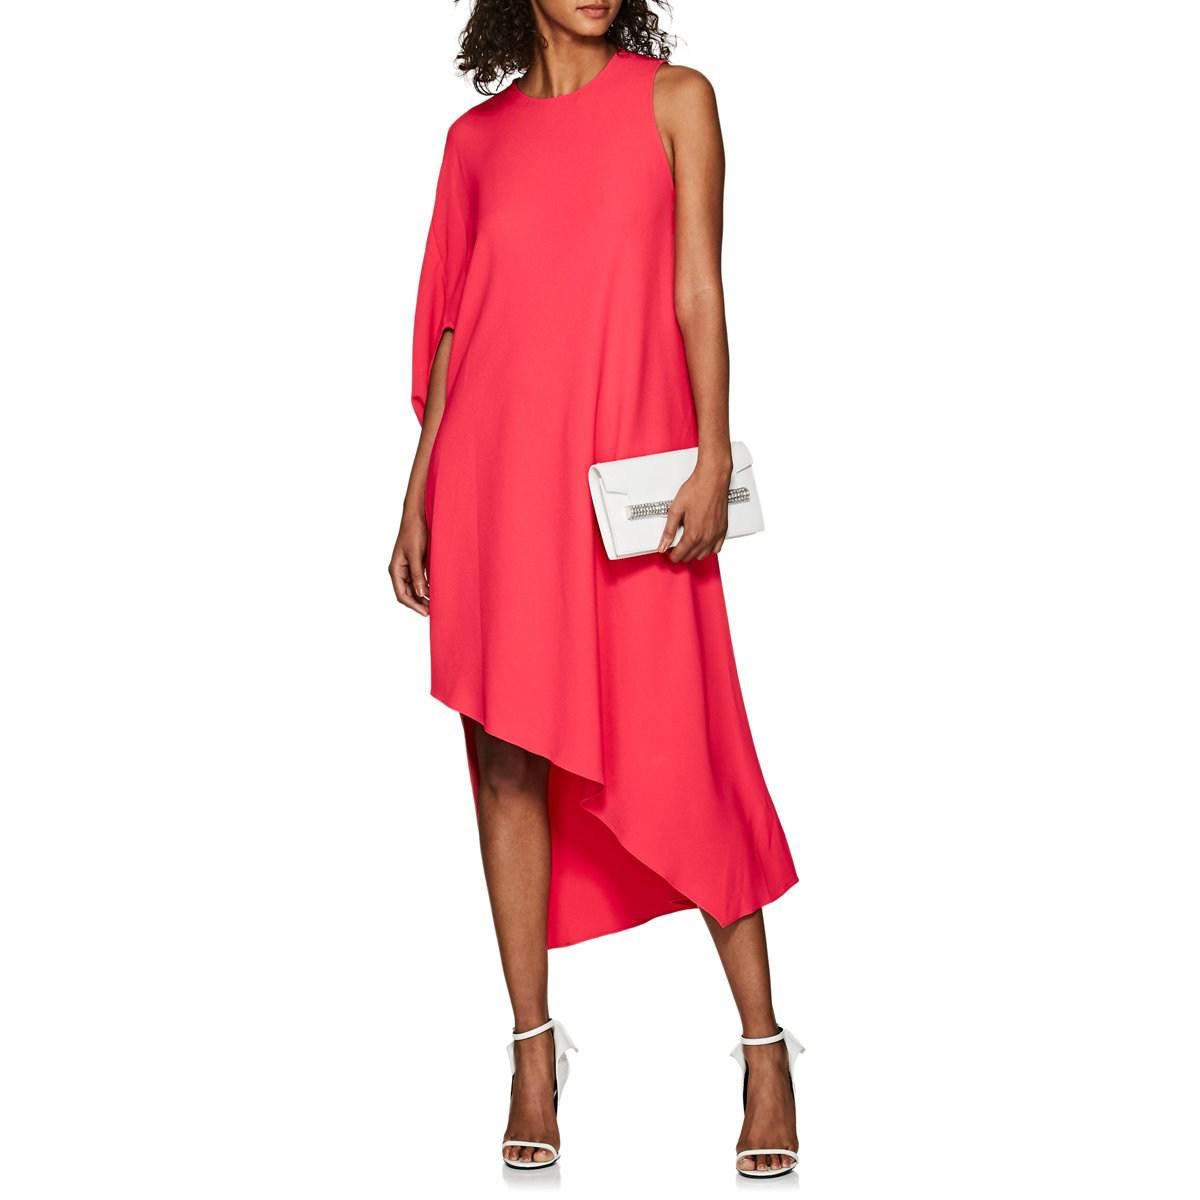 6446d2ac613 Narciso Rodriguez Draped Cady Asymmetric Dress in Red - Lyst